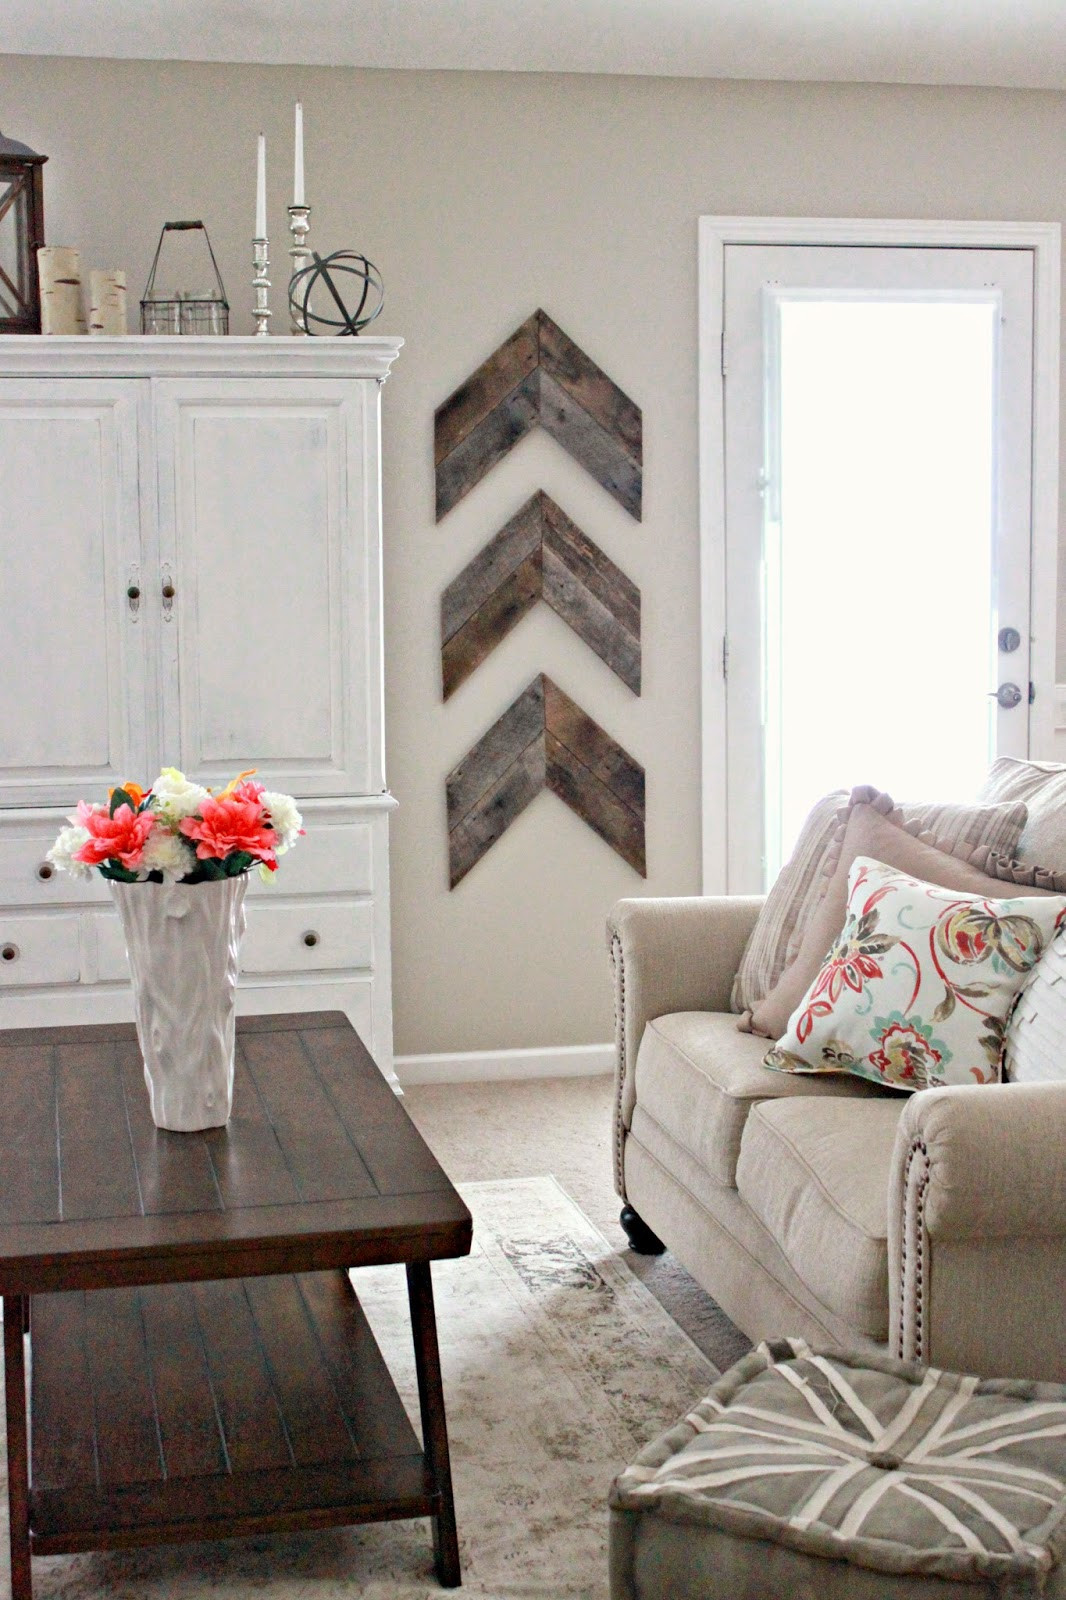 Best ideas about Living Room Wall . Save or Pin 15 Striking Ways to Decorate with Arrows Now.